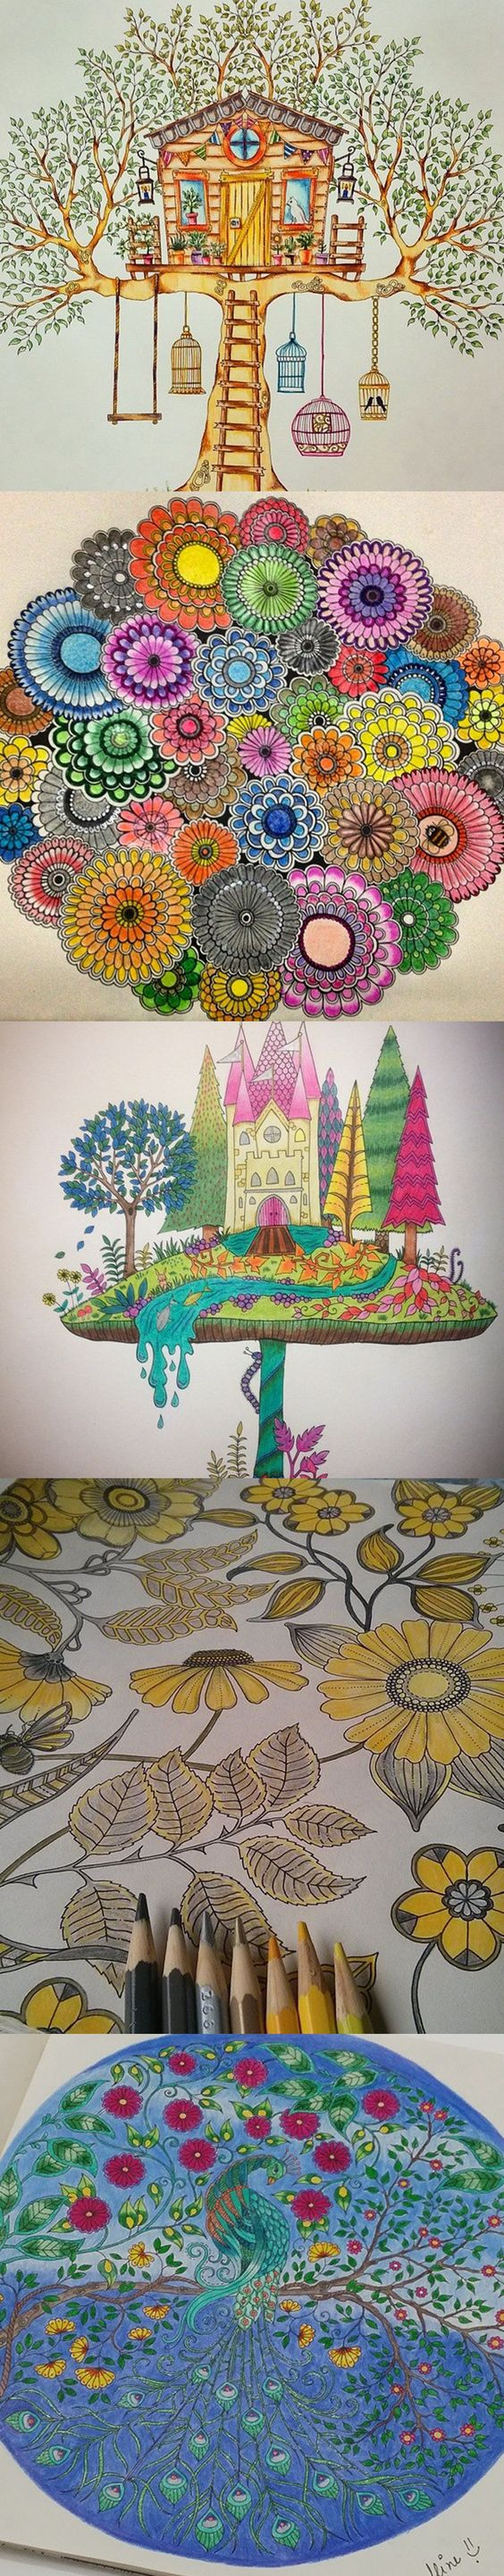 Coloring books coloring and arts and crafts on pinterest for Crafts for older adults